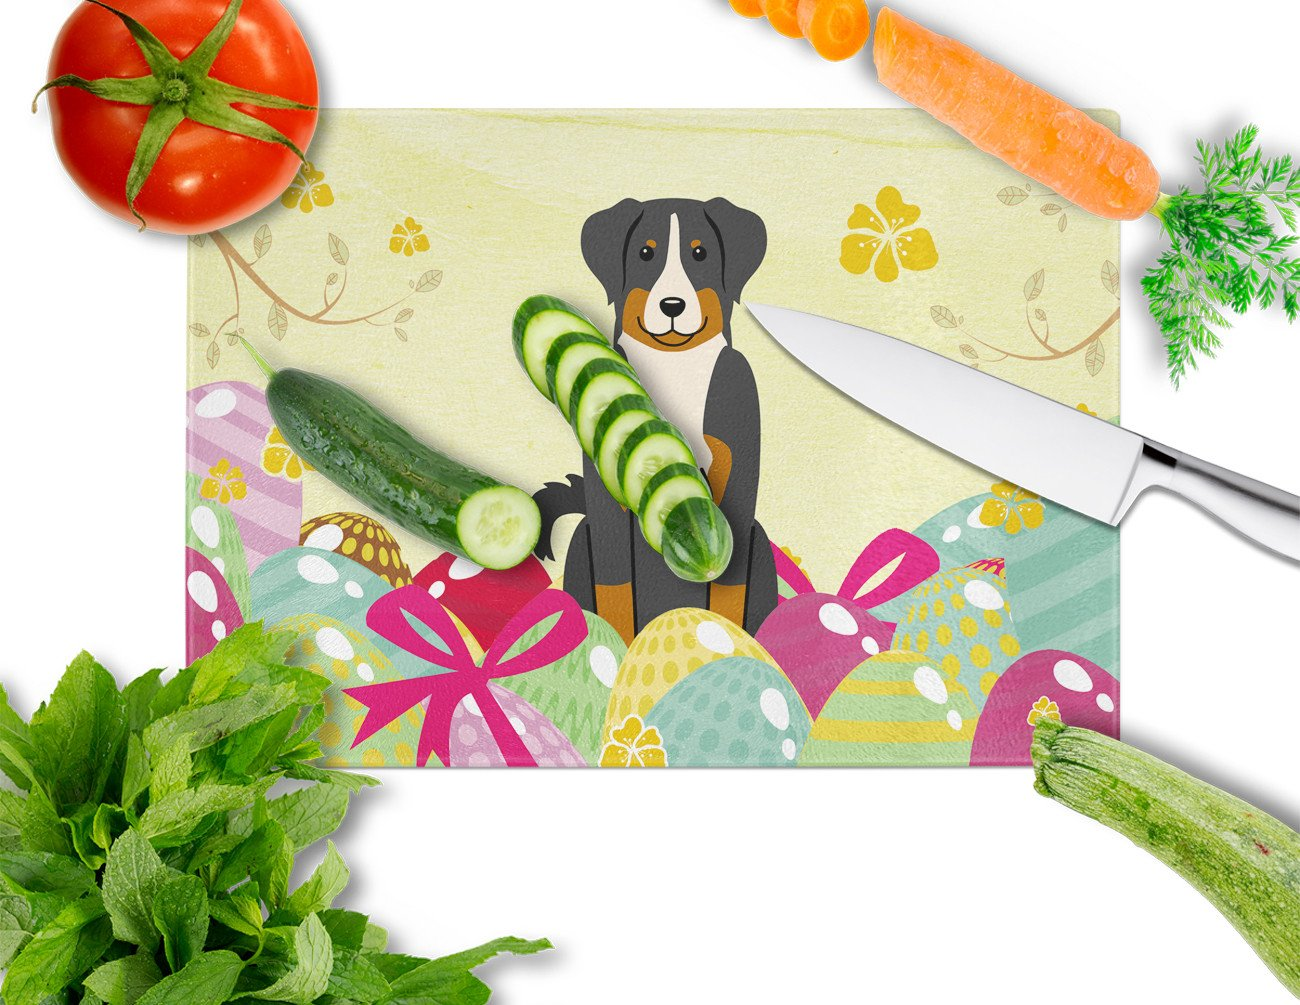 Easter Eggs Appenzeller Sennenhund Glass Cutting Board Large BB6043LCB by Caroline's Treasures